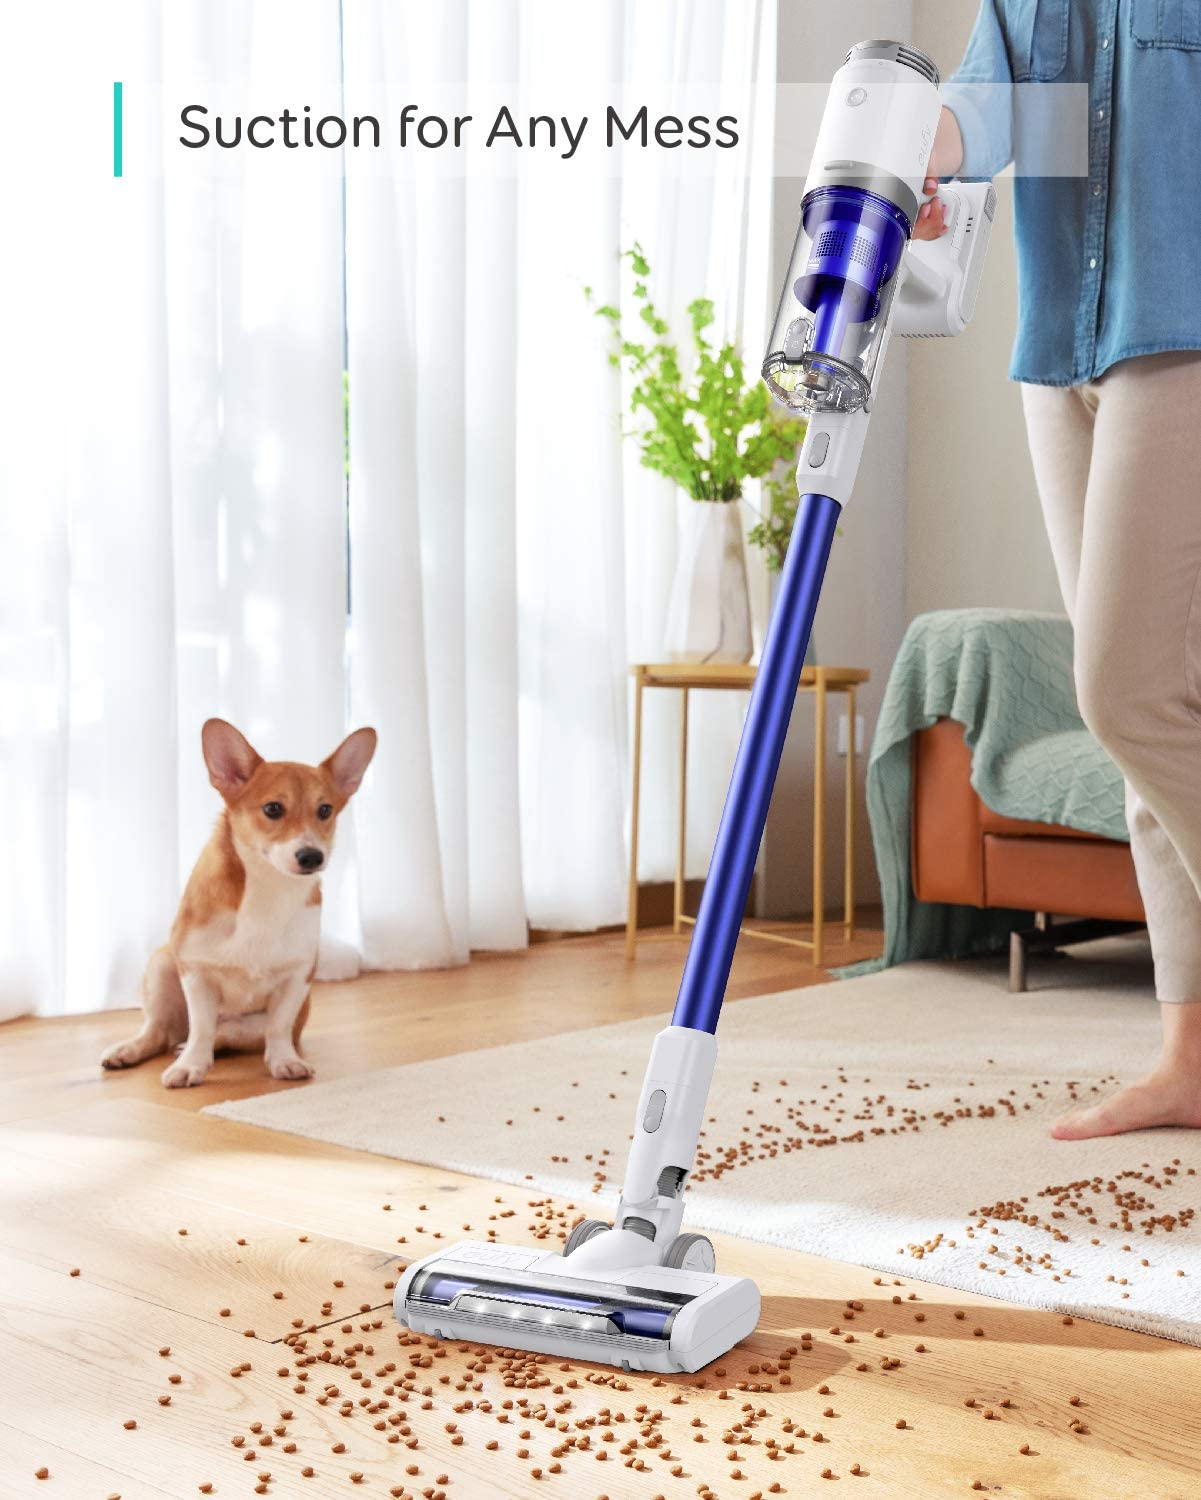 Cordless HomeVac S11 Infinity Handstick Vacuum Cleaner Lightweight eufy by Anker Deep Clean Carpet to Hard Floor 120AW Suction Power Additional Detachable Battery